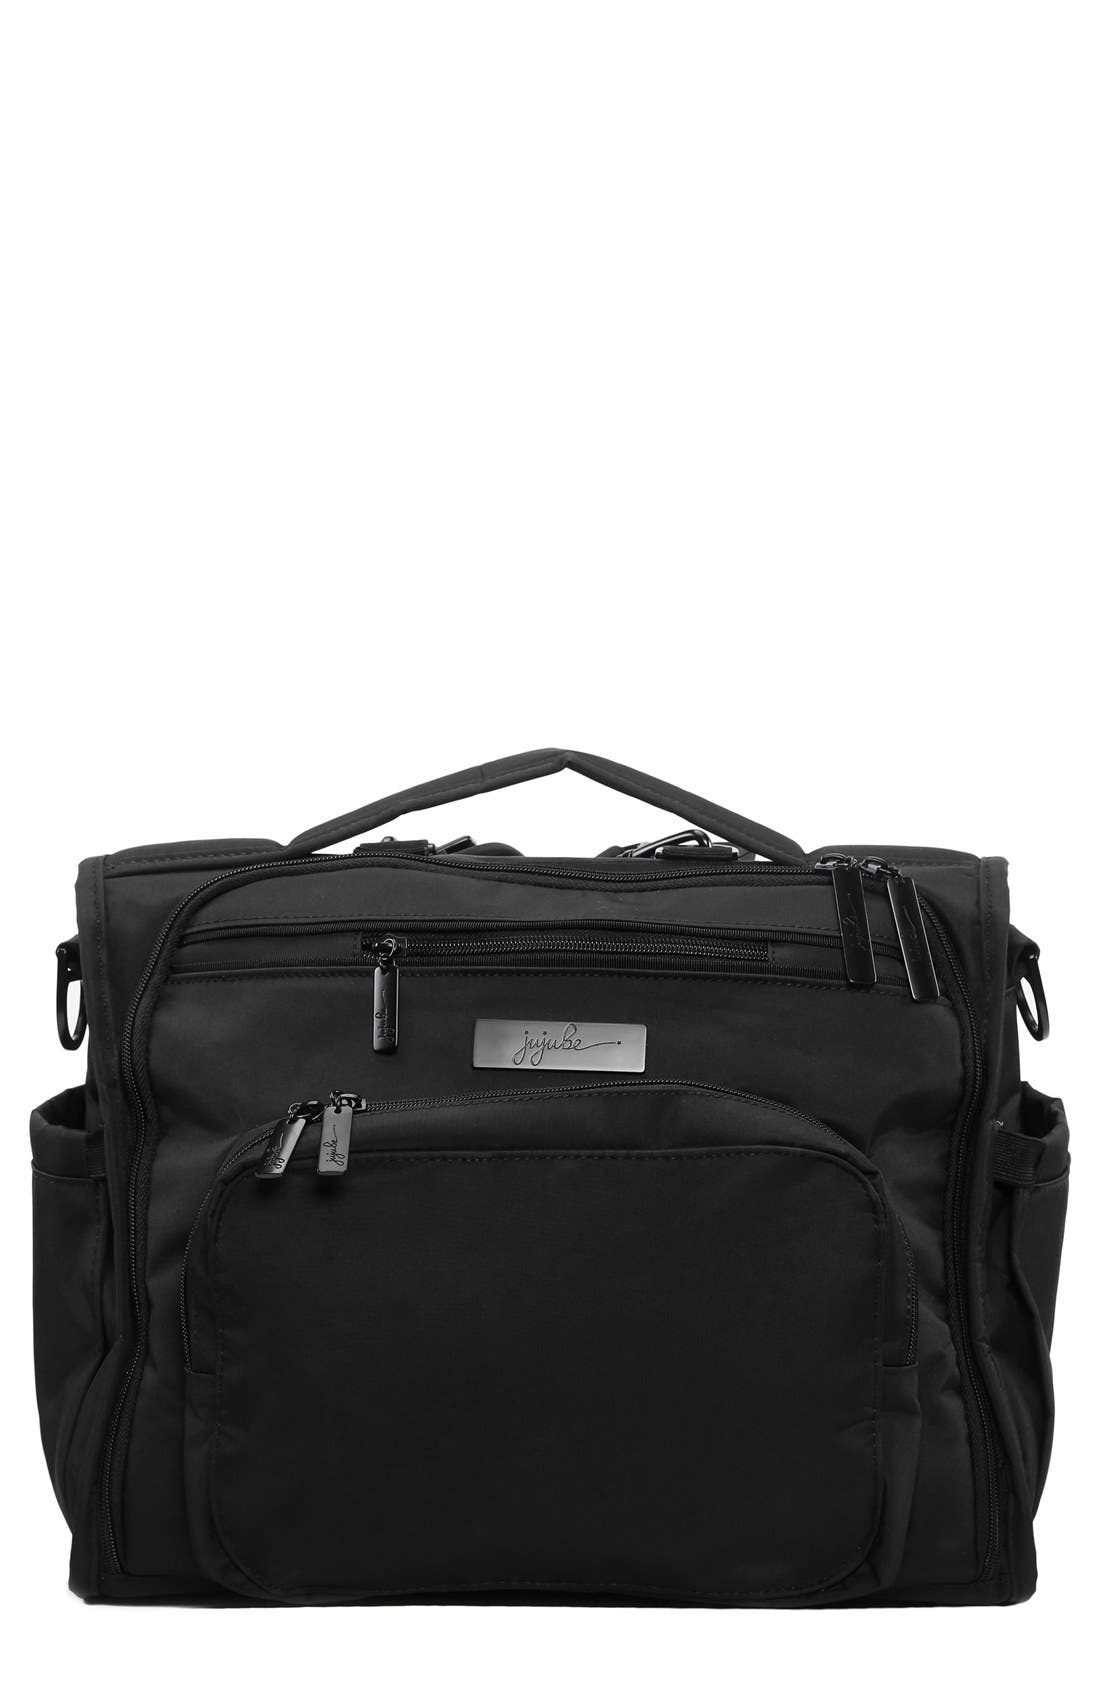 'BFF - Onyx Collection' Diaper Bag,                         Main,                         color, BLACK OUT